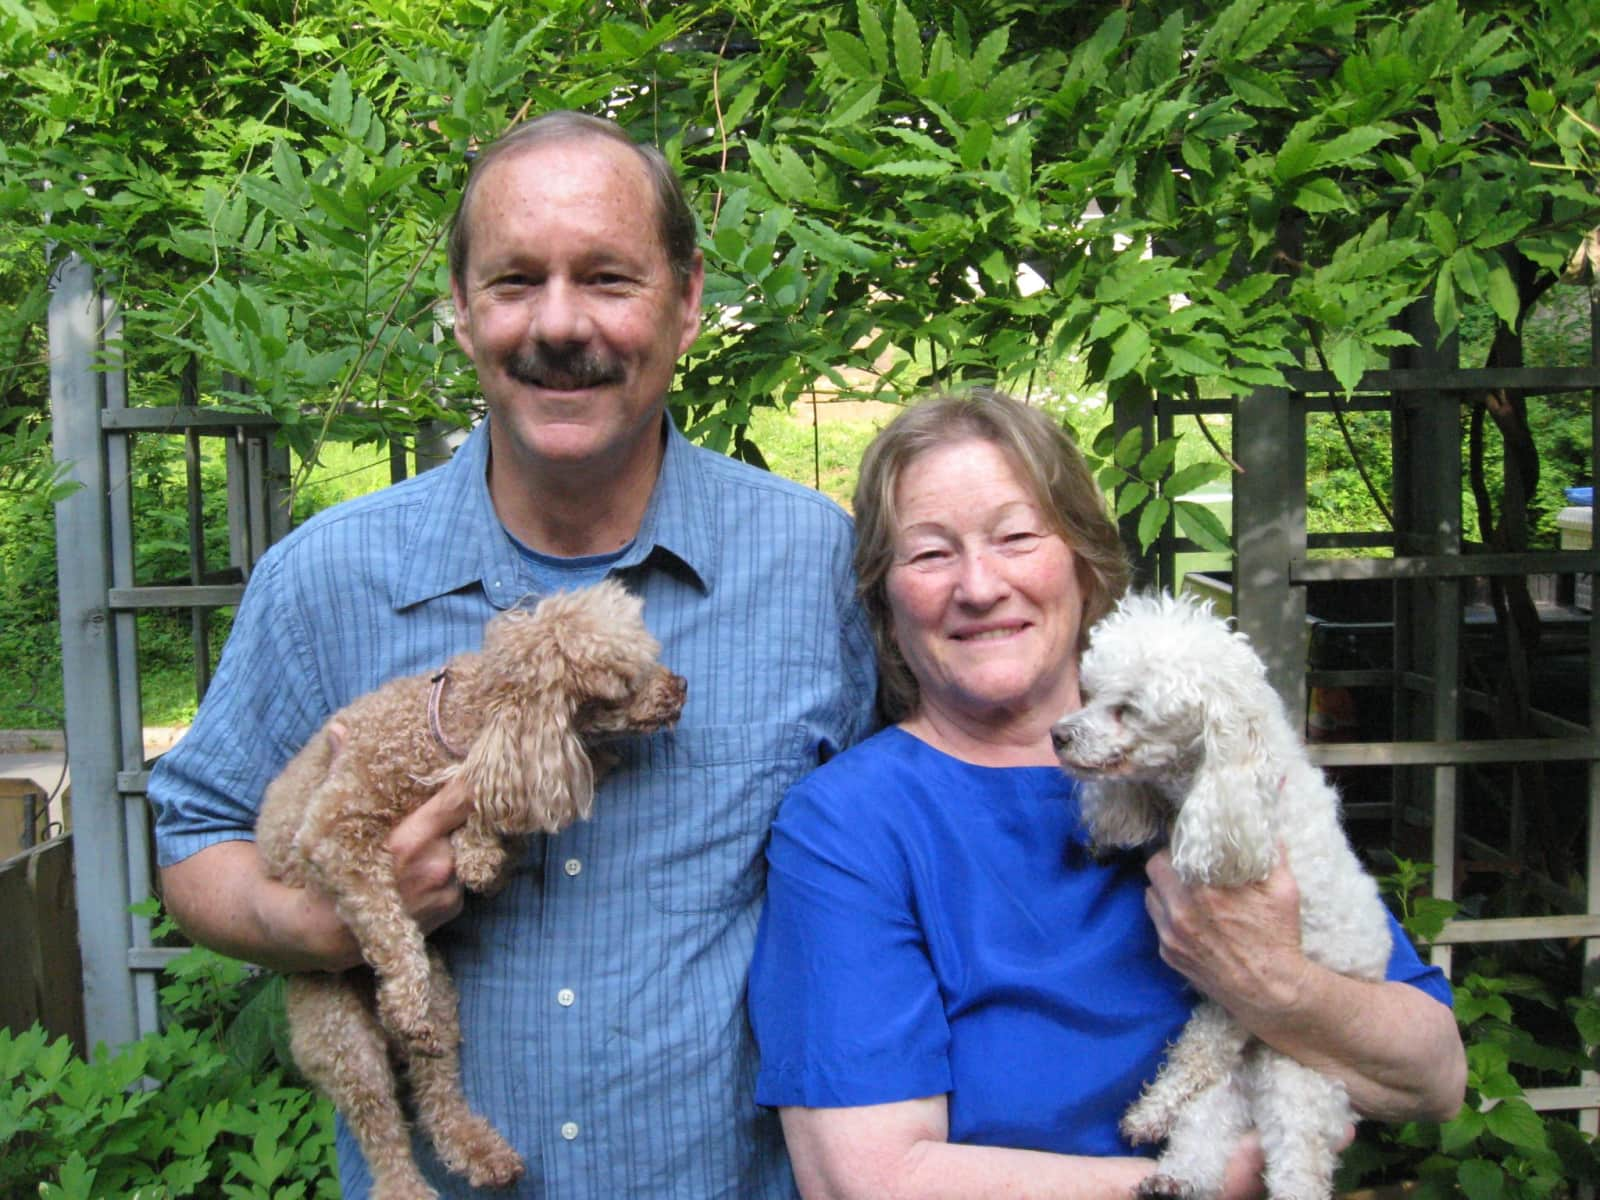 William and jane & William from Asheville, North Carolina, United States